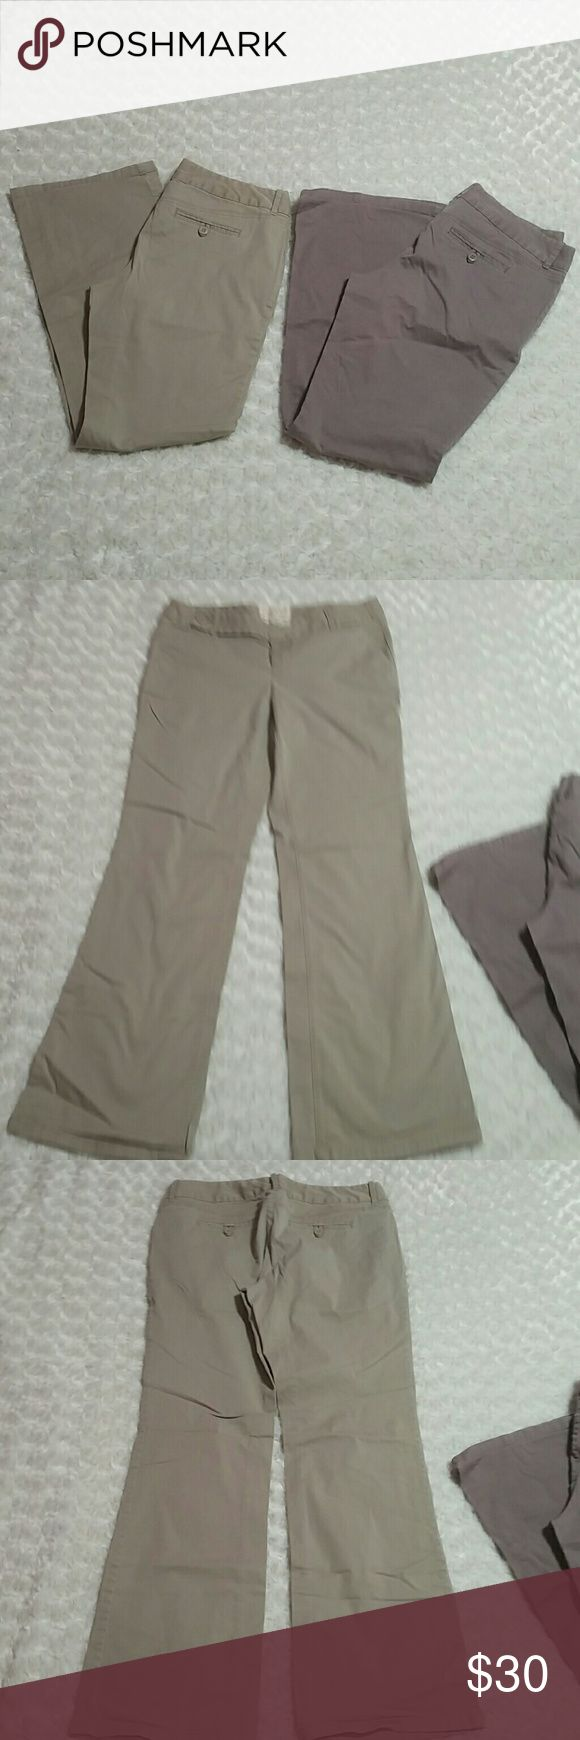 """VS London Jean Chino Stretch The Kate Fit Pants Worn but condition still good - 2 pair bundle - 97% cotton, 3% spandex - 1 khaki, 1 taupe - inseam 31"""" - rise 8"""" - """"The Kate Fit"""" chinos by London Jean purchased from Victoria's Secret catalog Victoria's Secret Pants"""